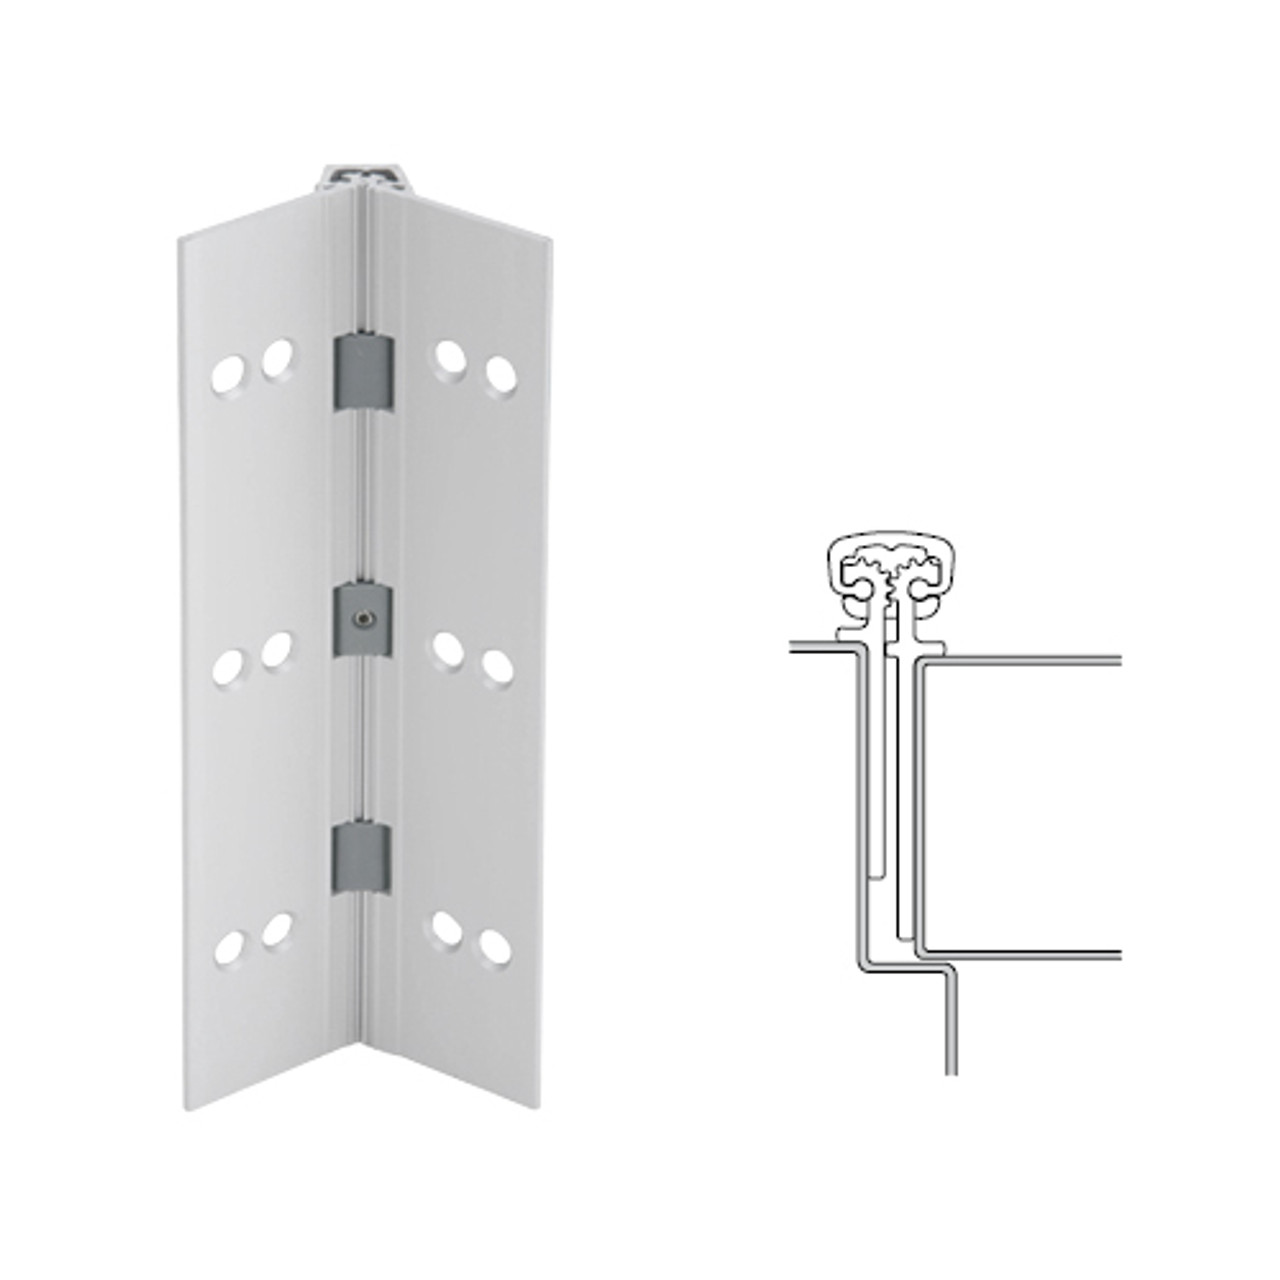 026XY-US28-95-SECWDWD IVES Full Mortise Continuous Geared Hinges with Security Screws - Hex Pin Drive in Satin Aluminum